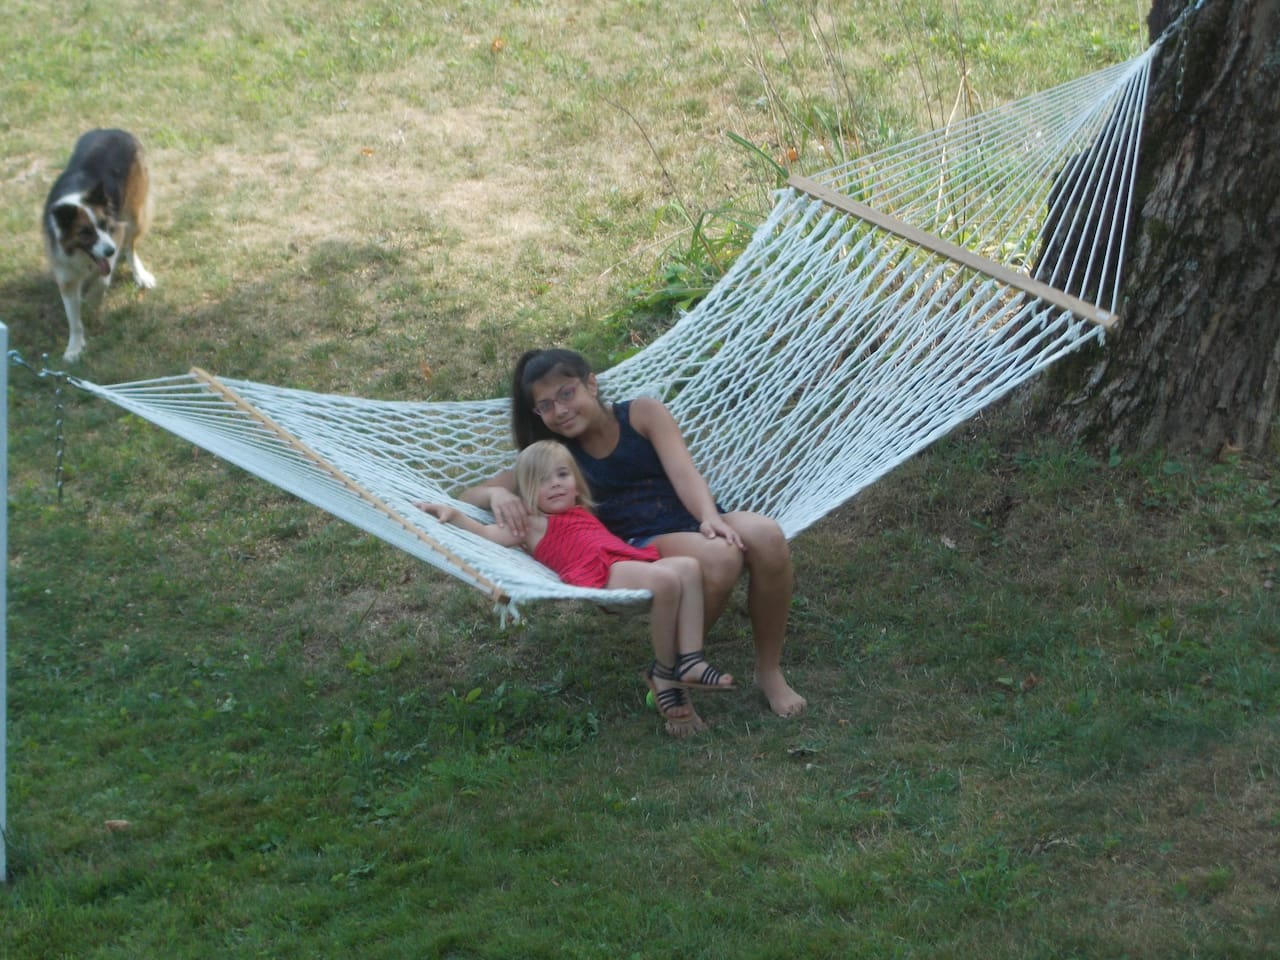 Relax on the hammock.